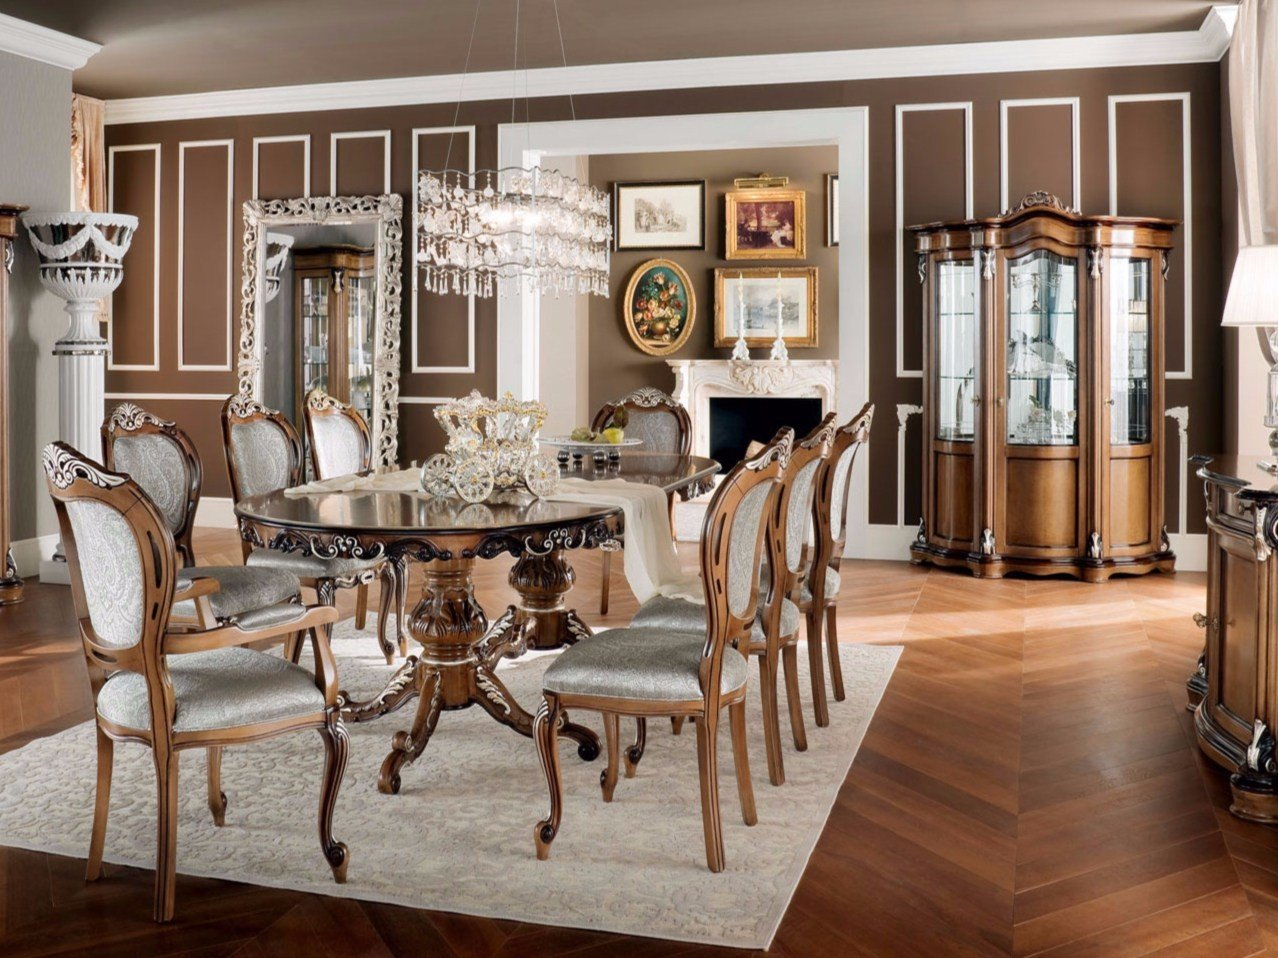 Hooker Furniture Dining Room Bandera 86in Table w218in